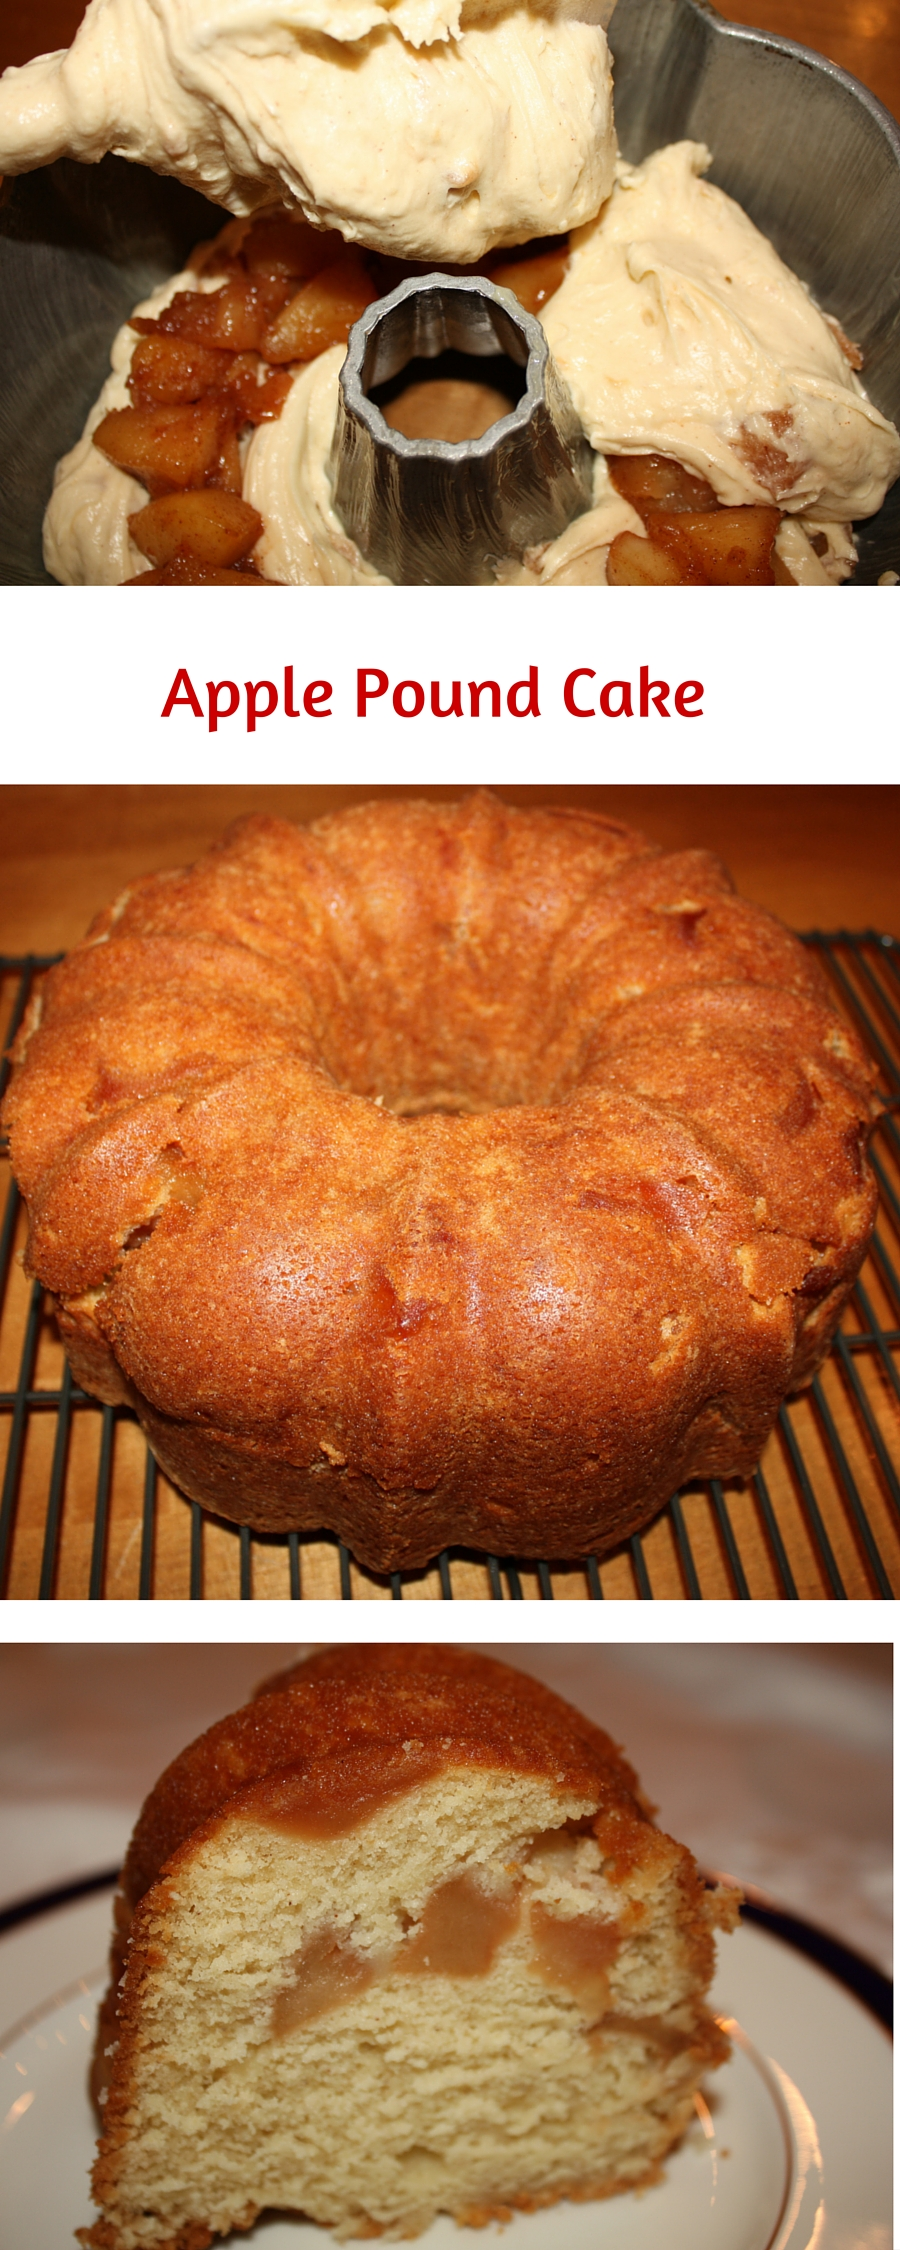 Apple pound cake recipes from scratch